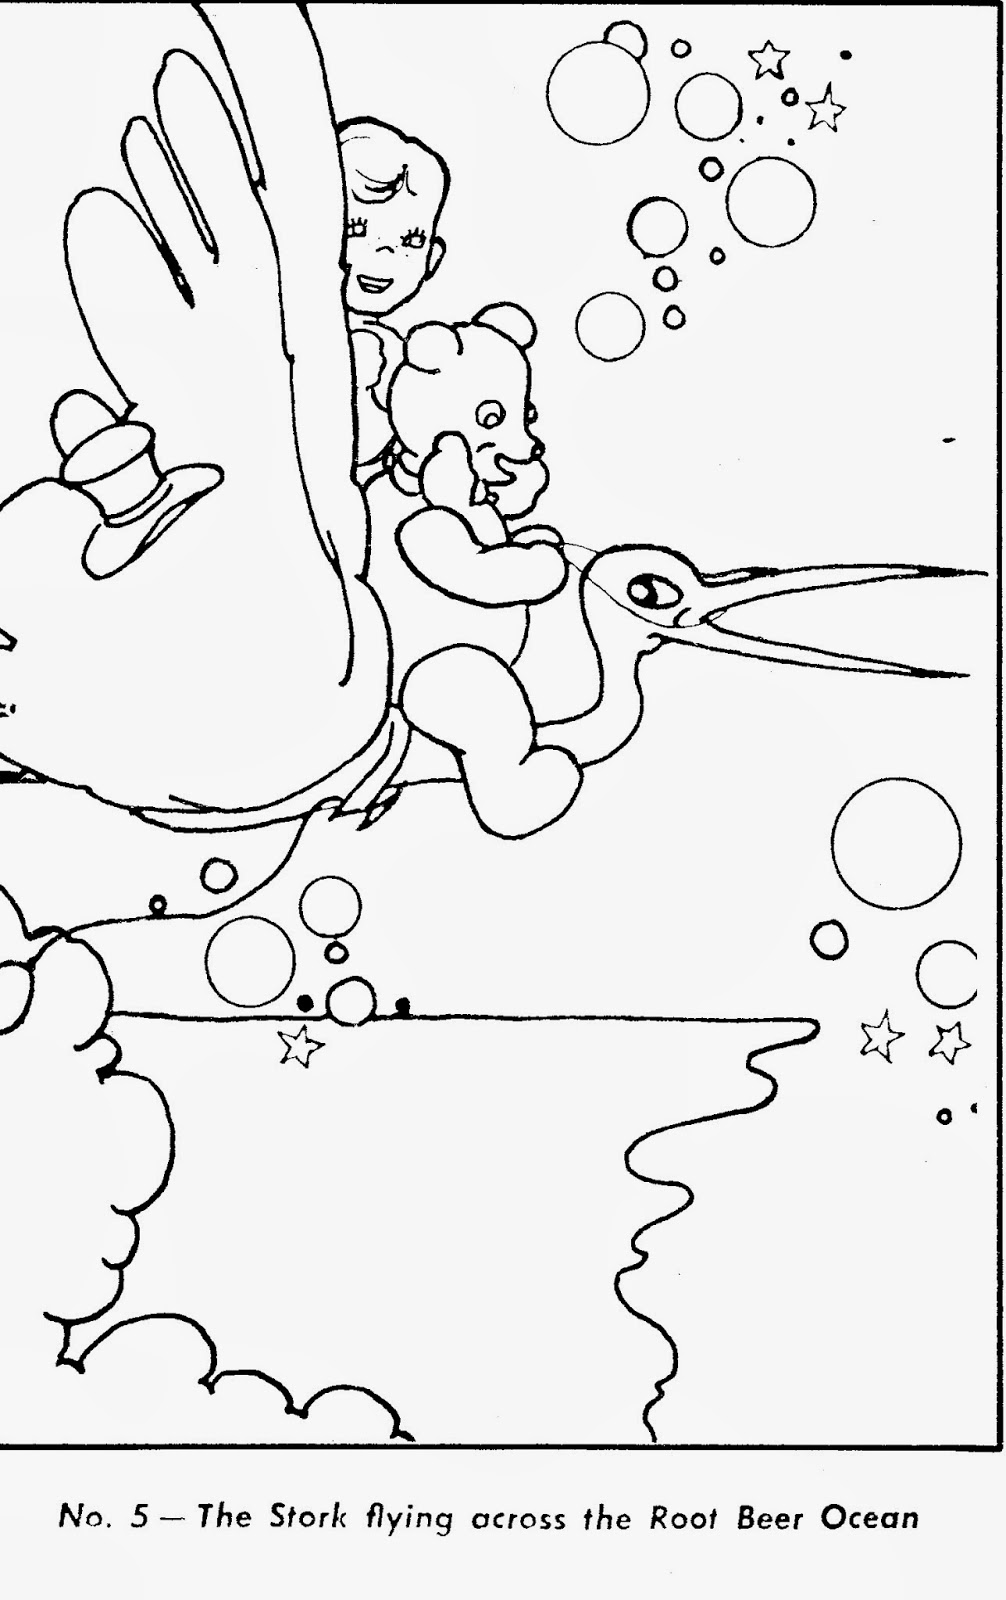 thanksgiving teddy bear coloring pages | Kitty And Me Designs: Happy Thanksgiving!